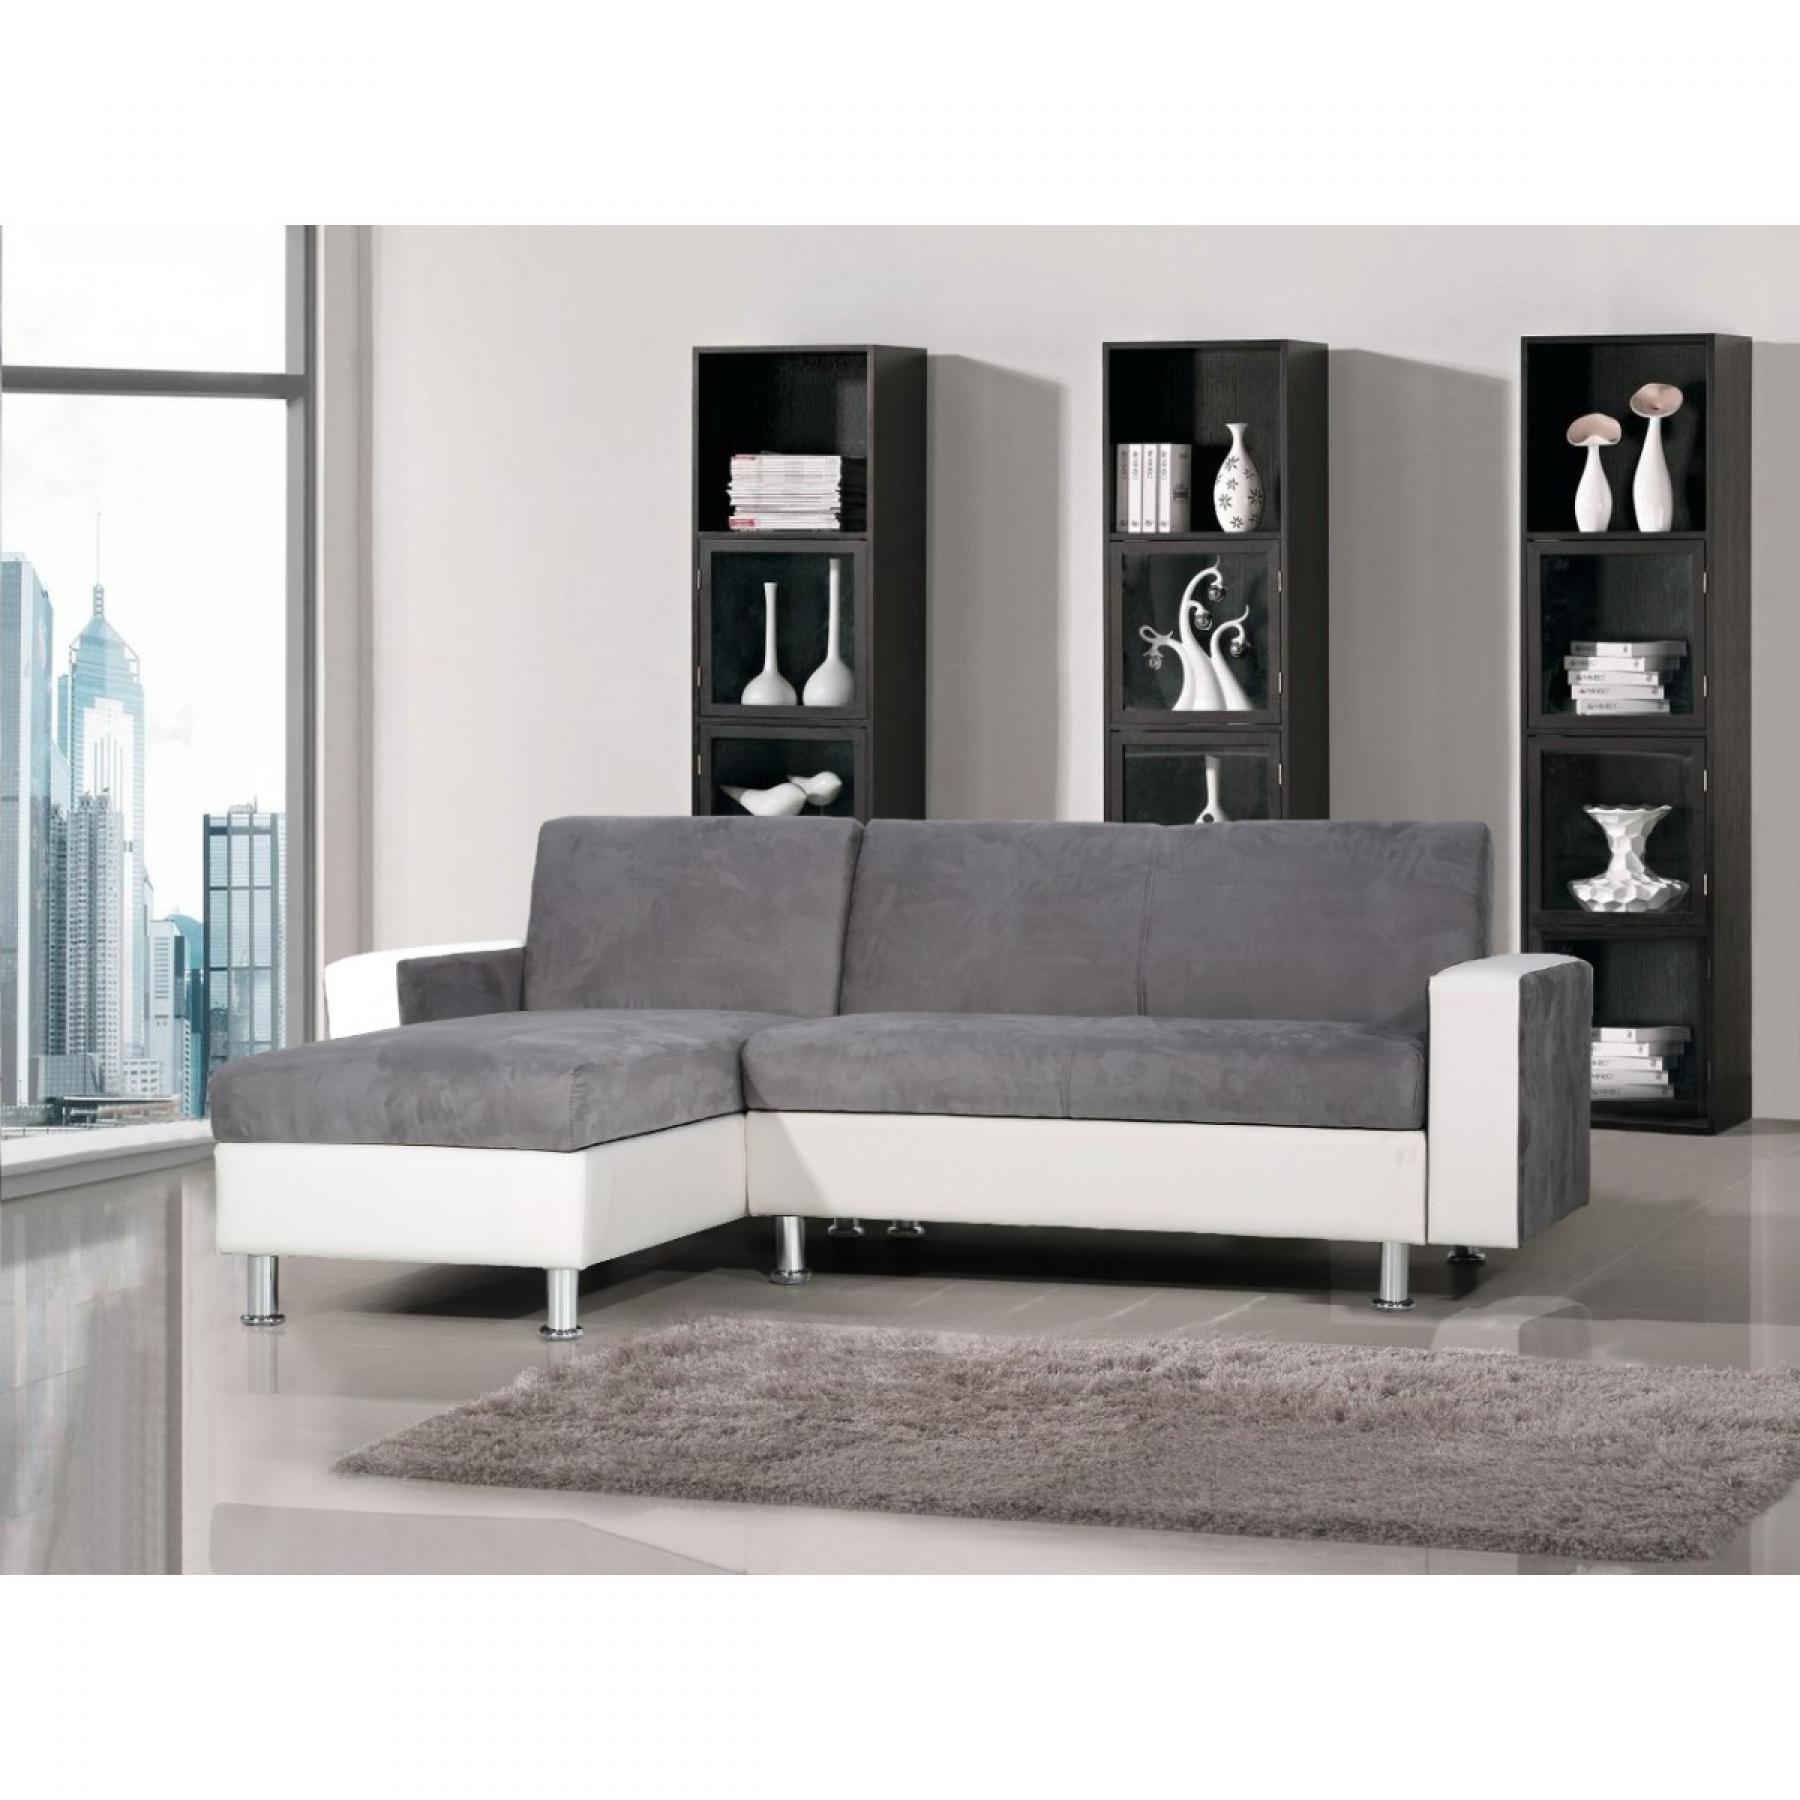 photos canap convertible gris et blanc pas cher. Black Bedroom Furniture Sets. Home Design Ideas